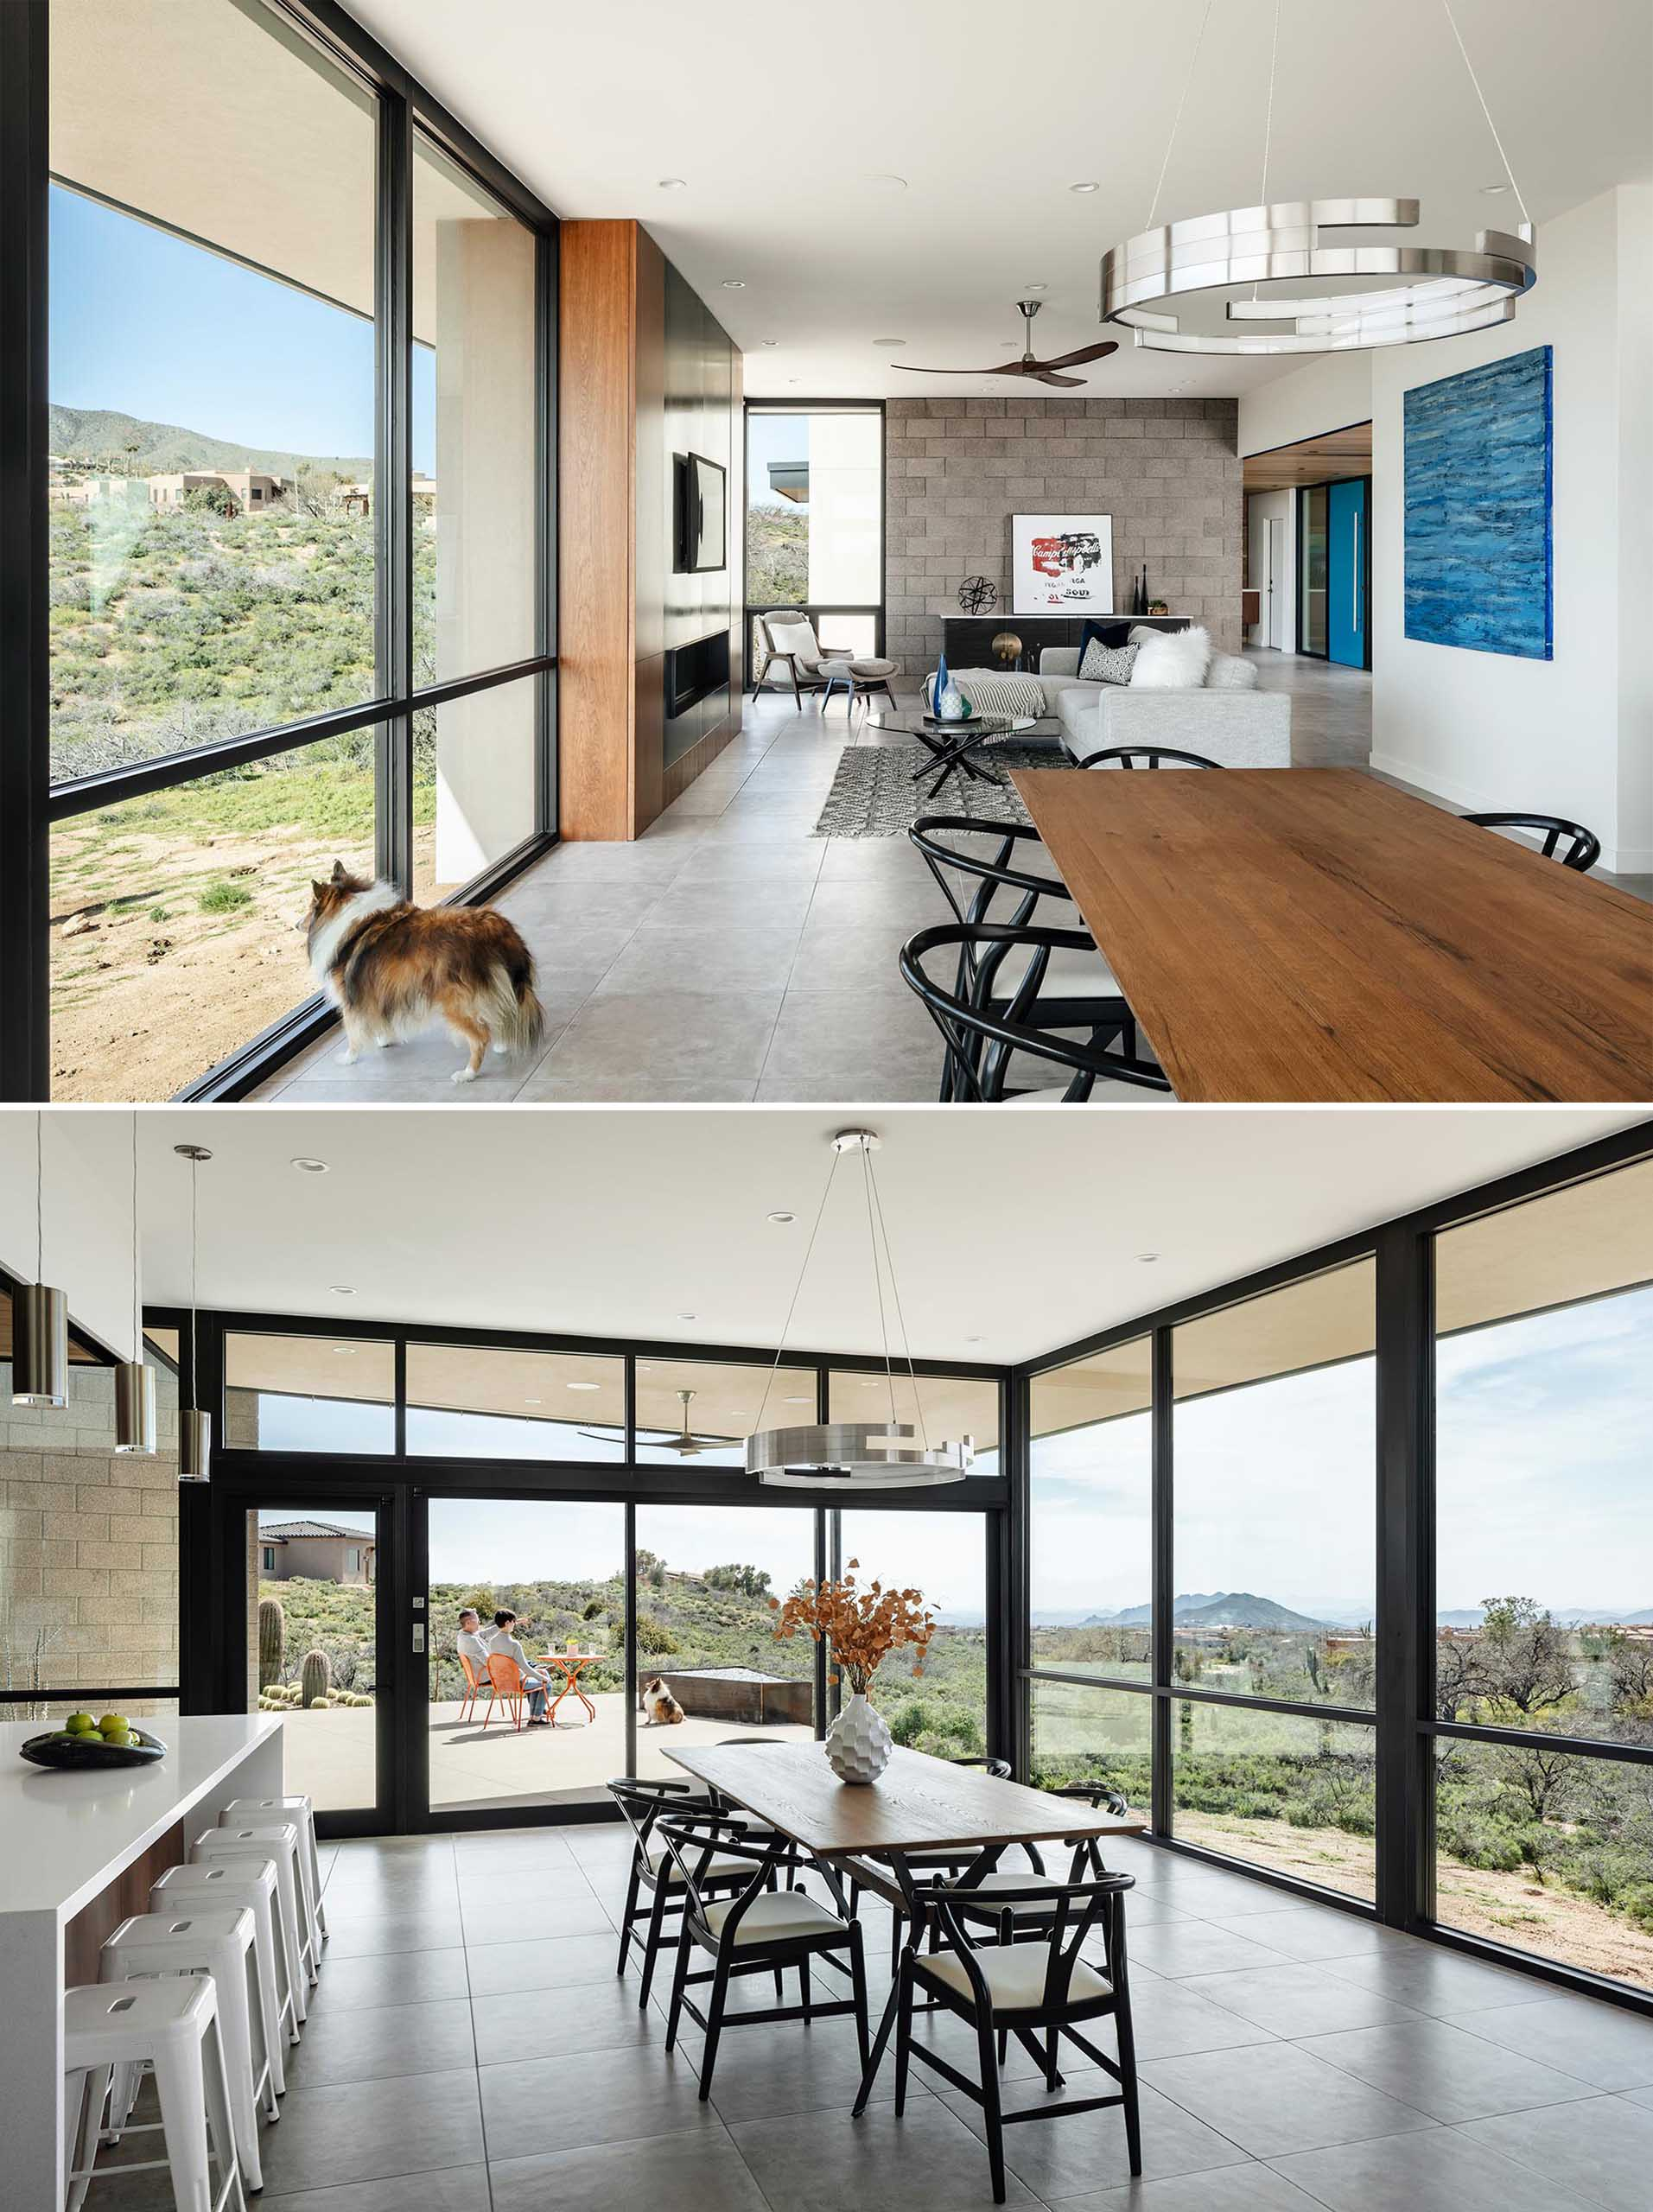 This modern dining area is surrounded by floor to ceiling glass, while a 3 panel sliding door systems opens to the outdoor patio beyond.